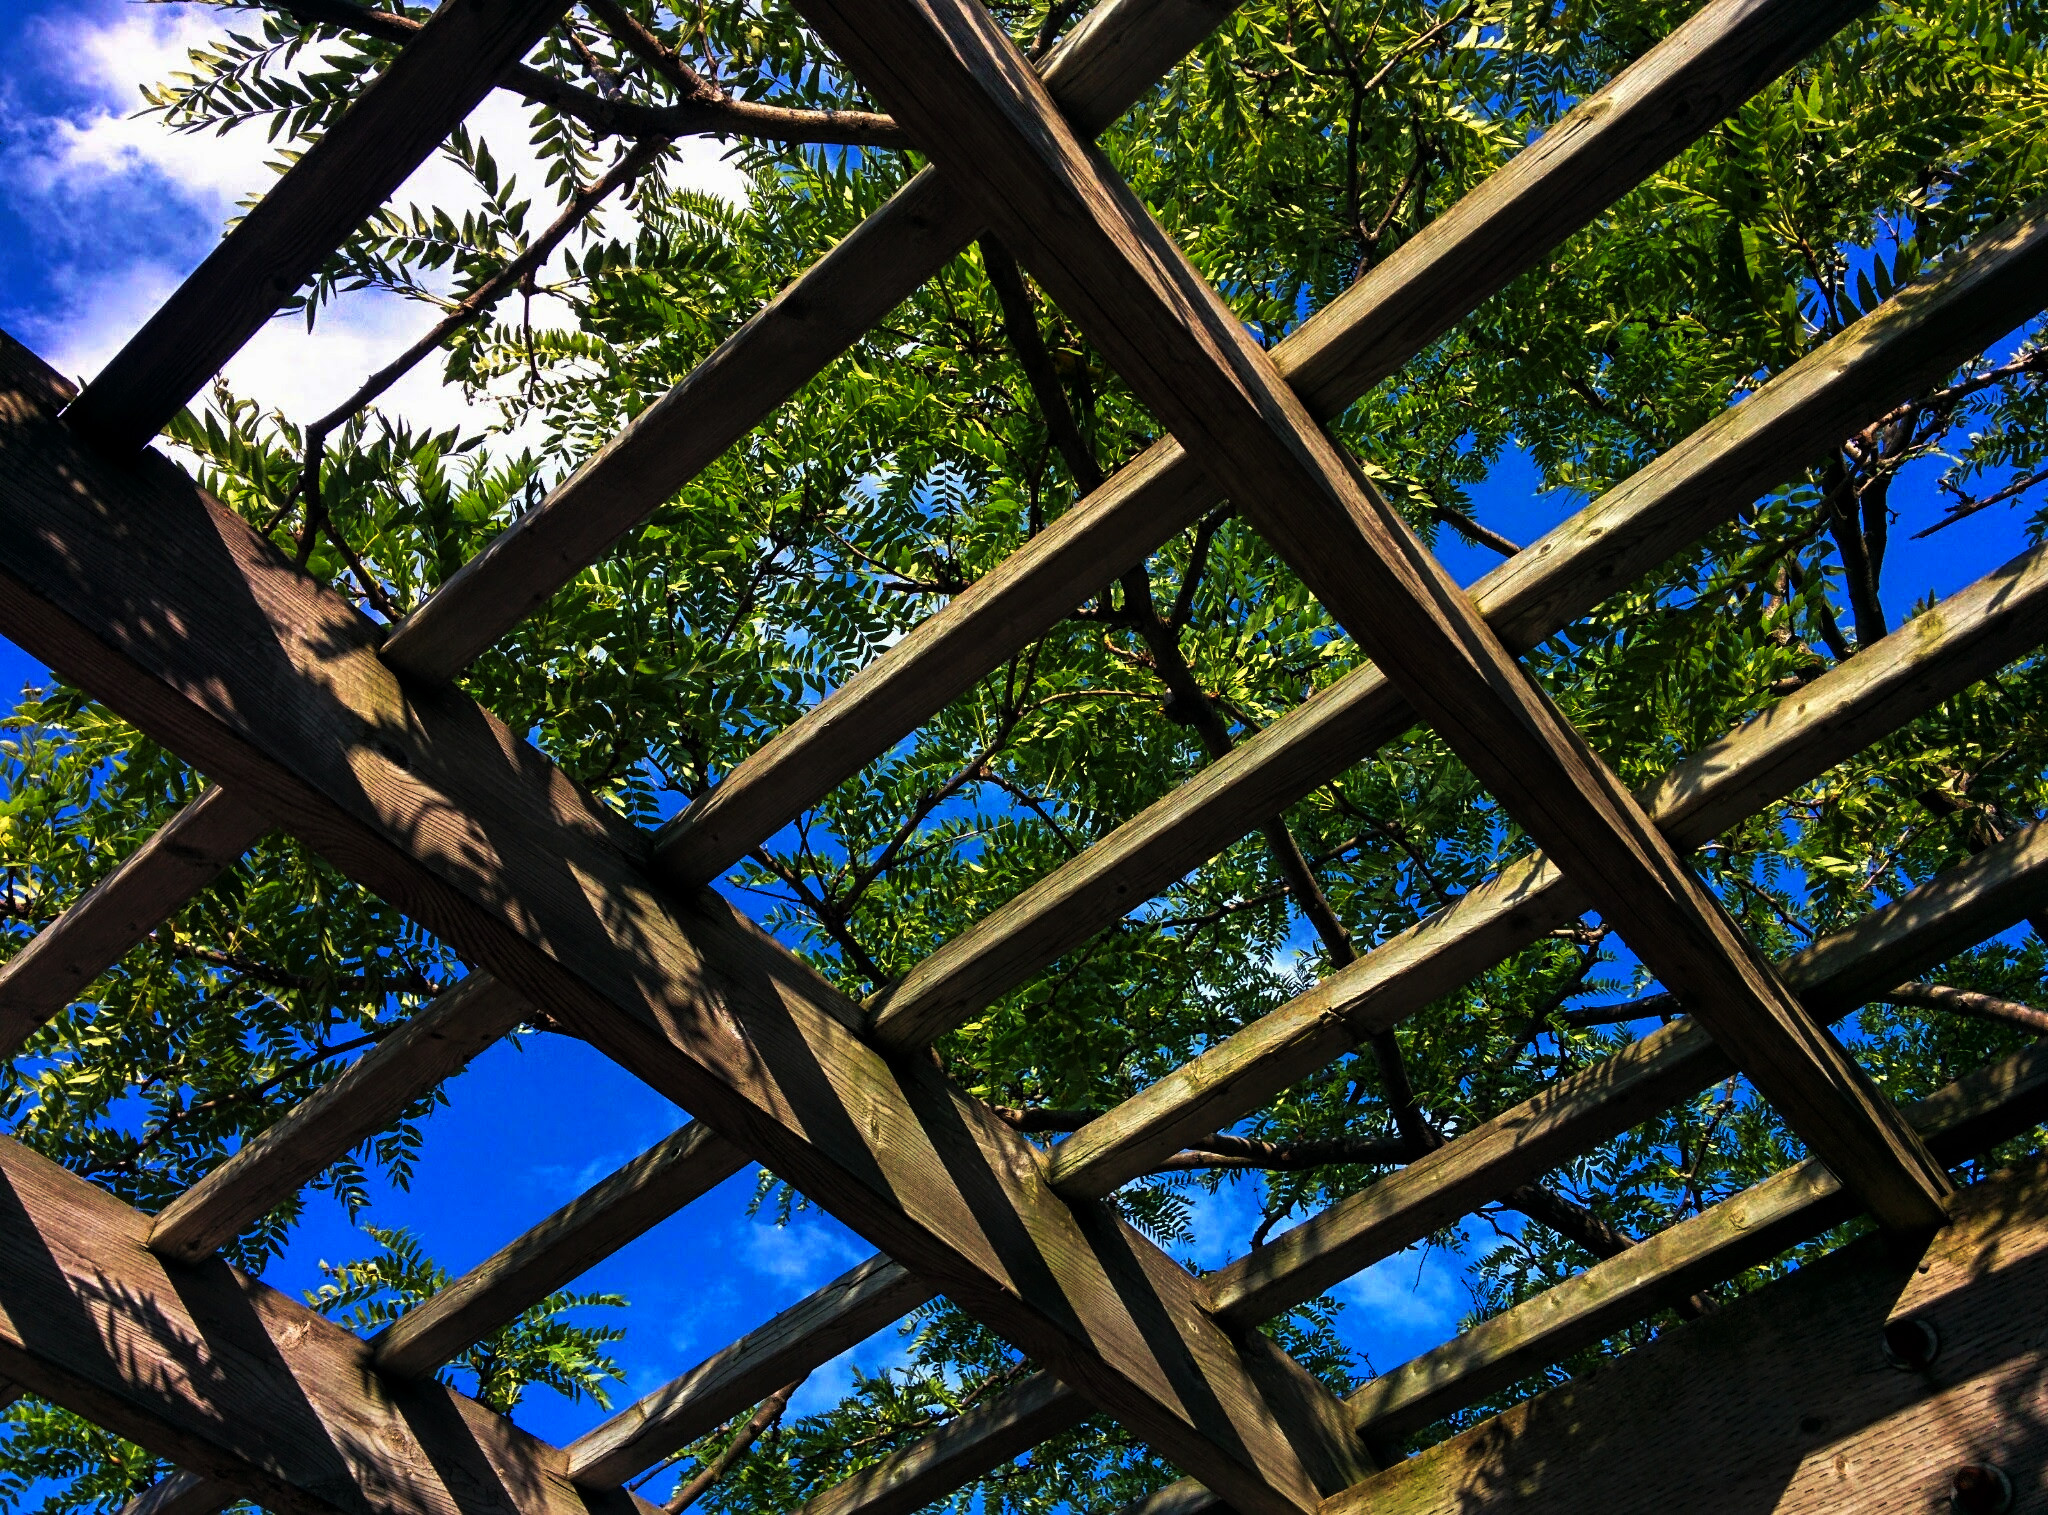 Trees above a open roof